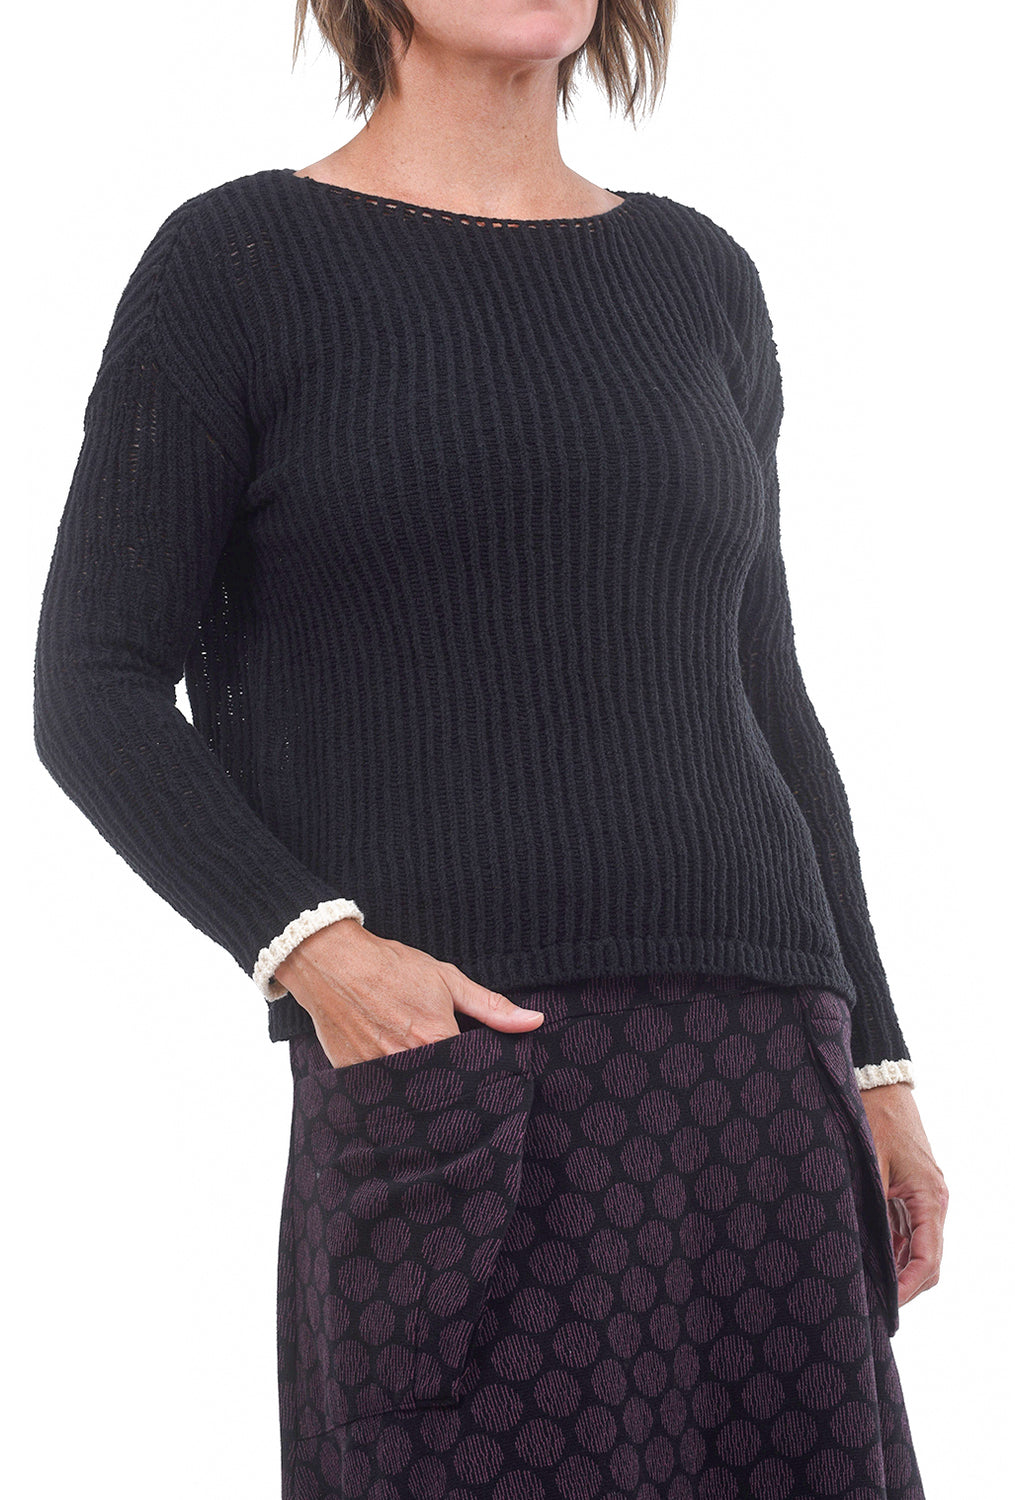 Open Stitch Sweater, Black